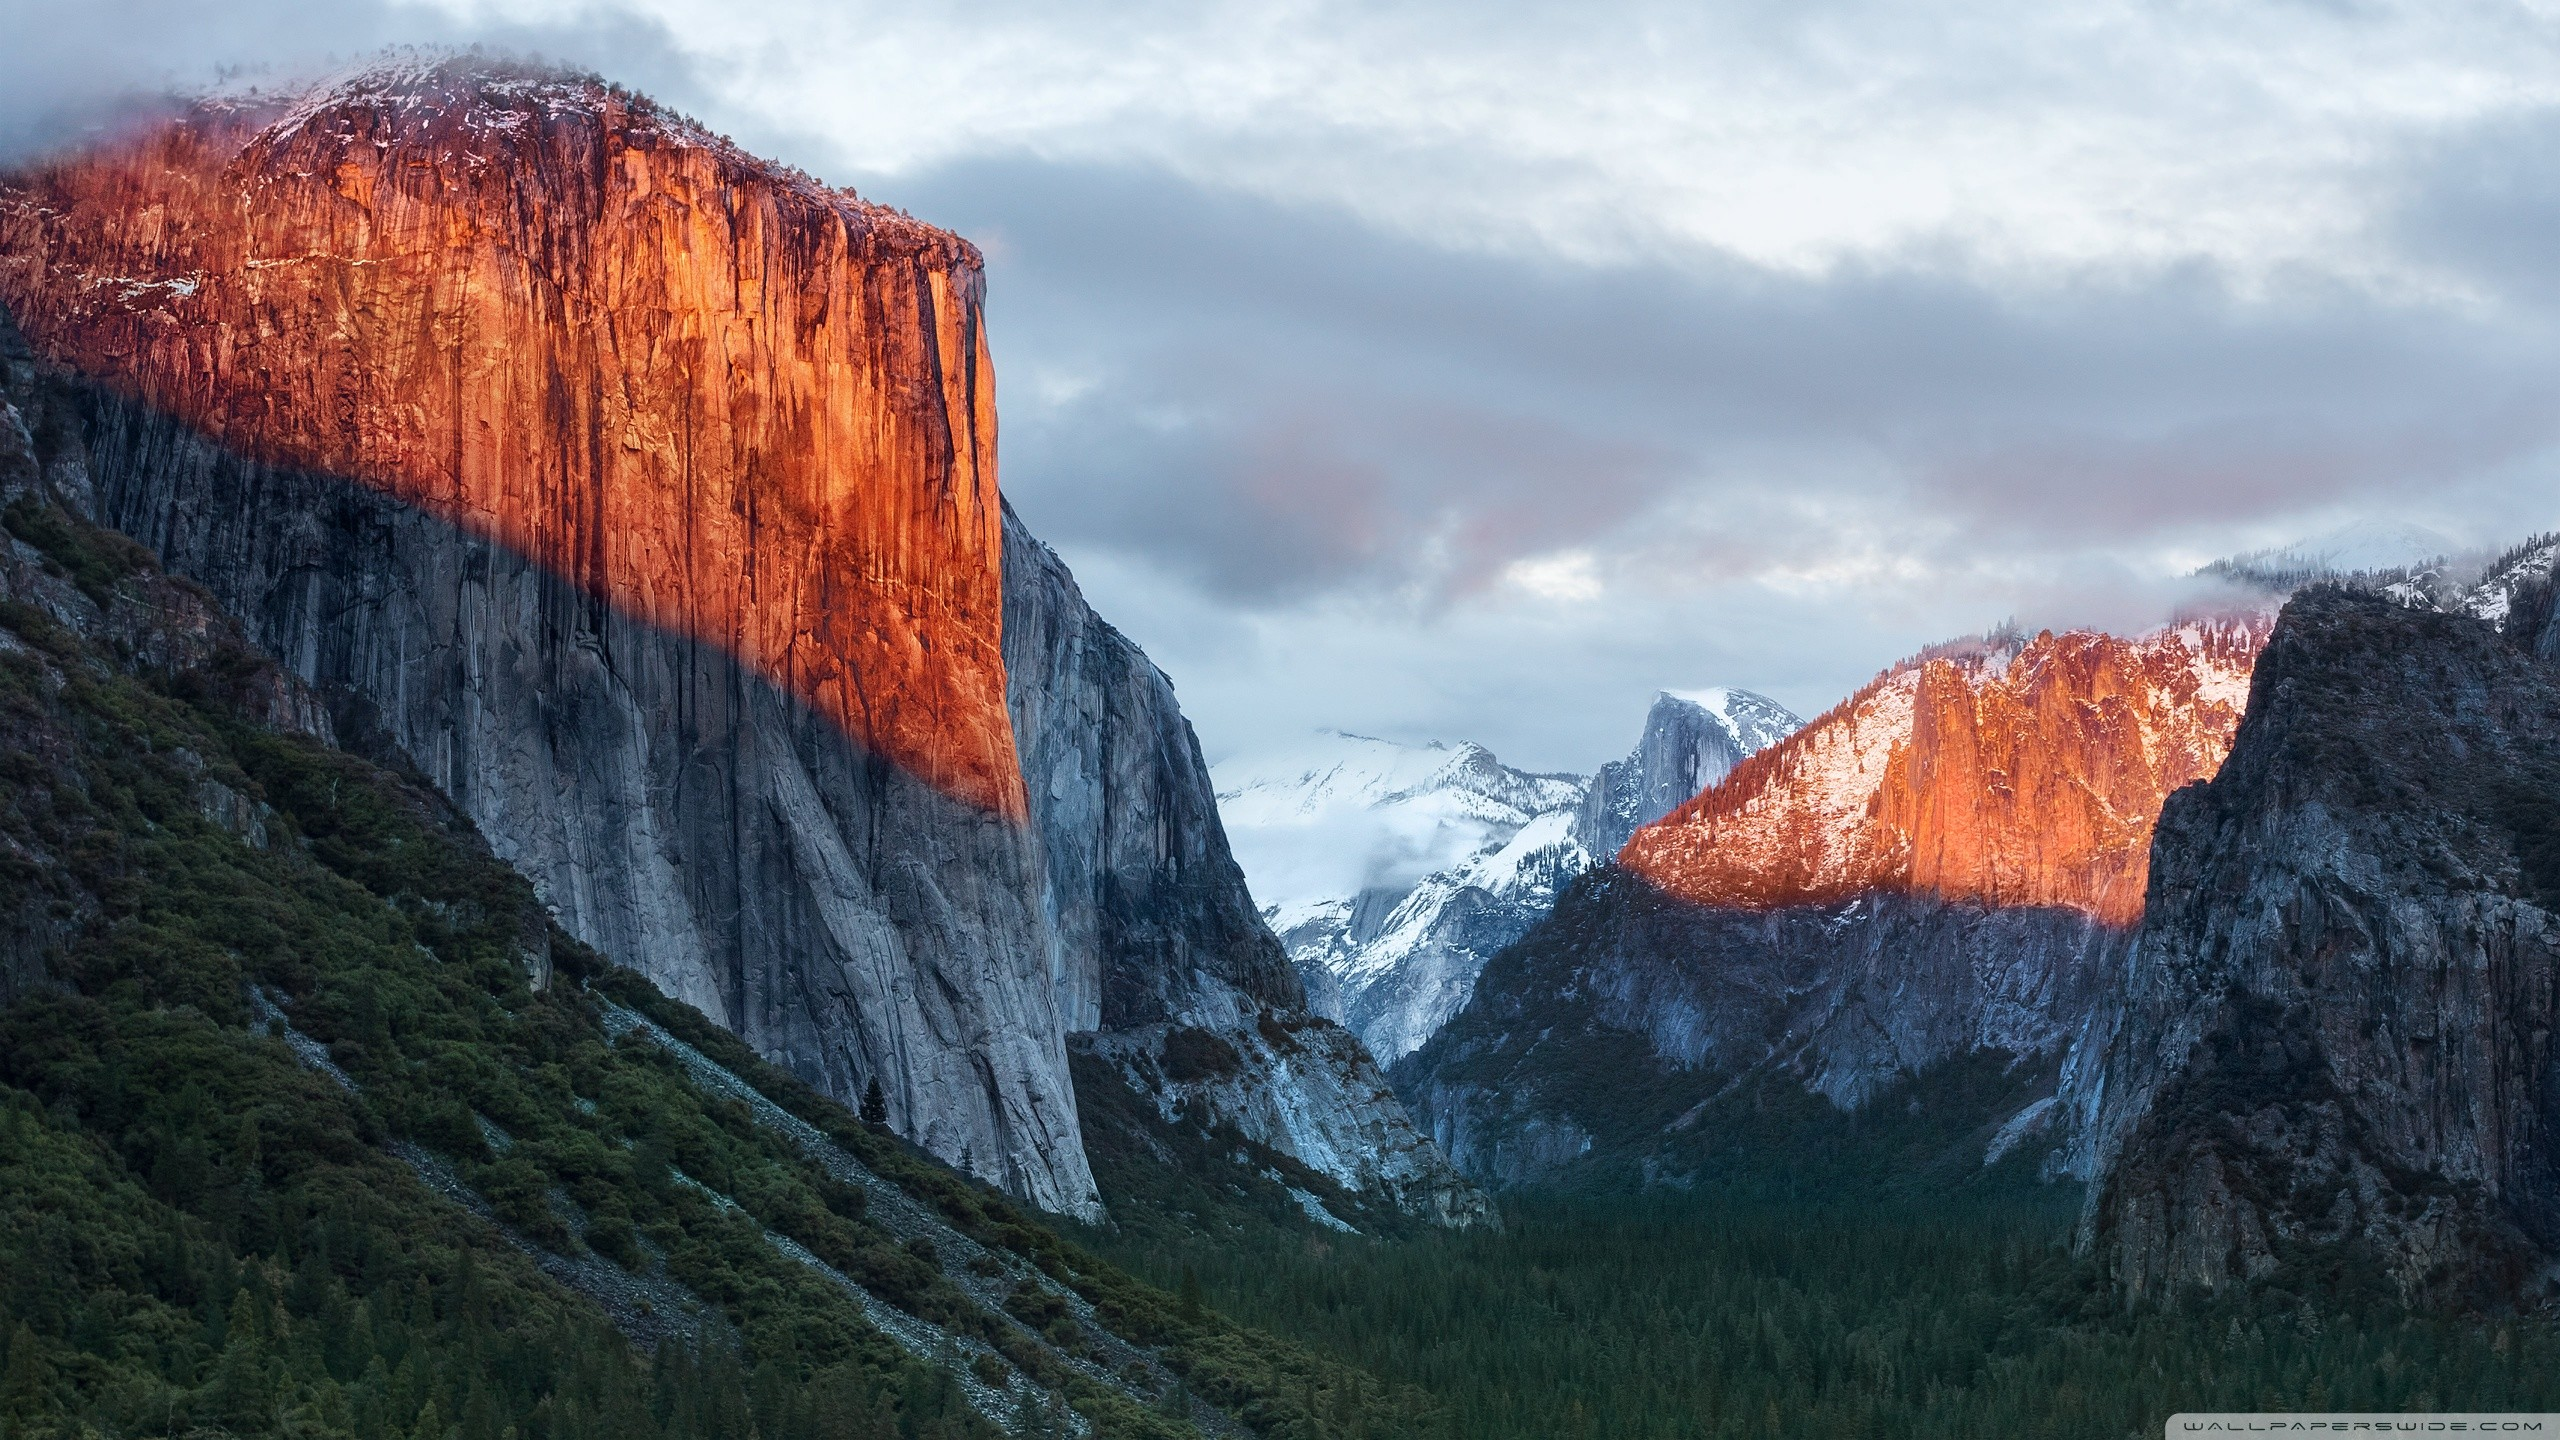 2560x1440 ... os x el capitan hd desktop wallpaper high definition; 1440p ...